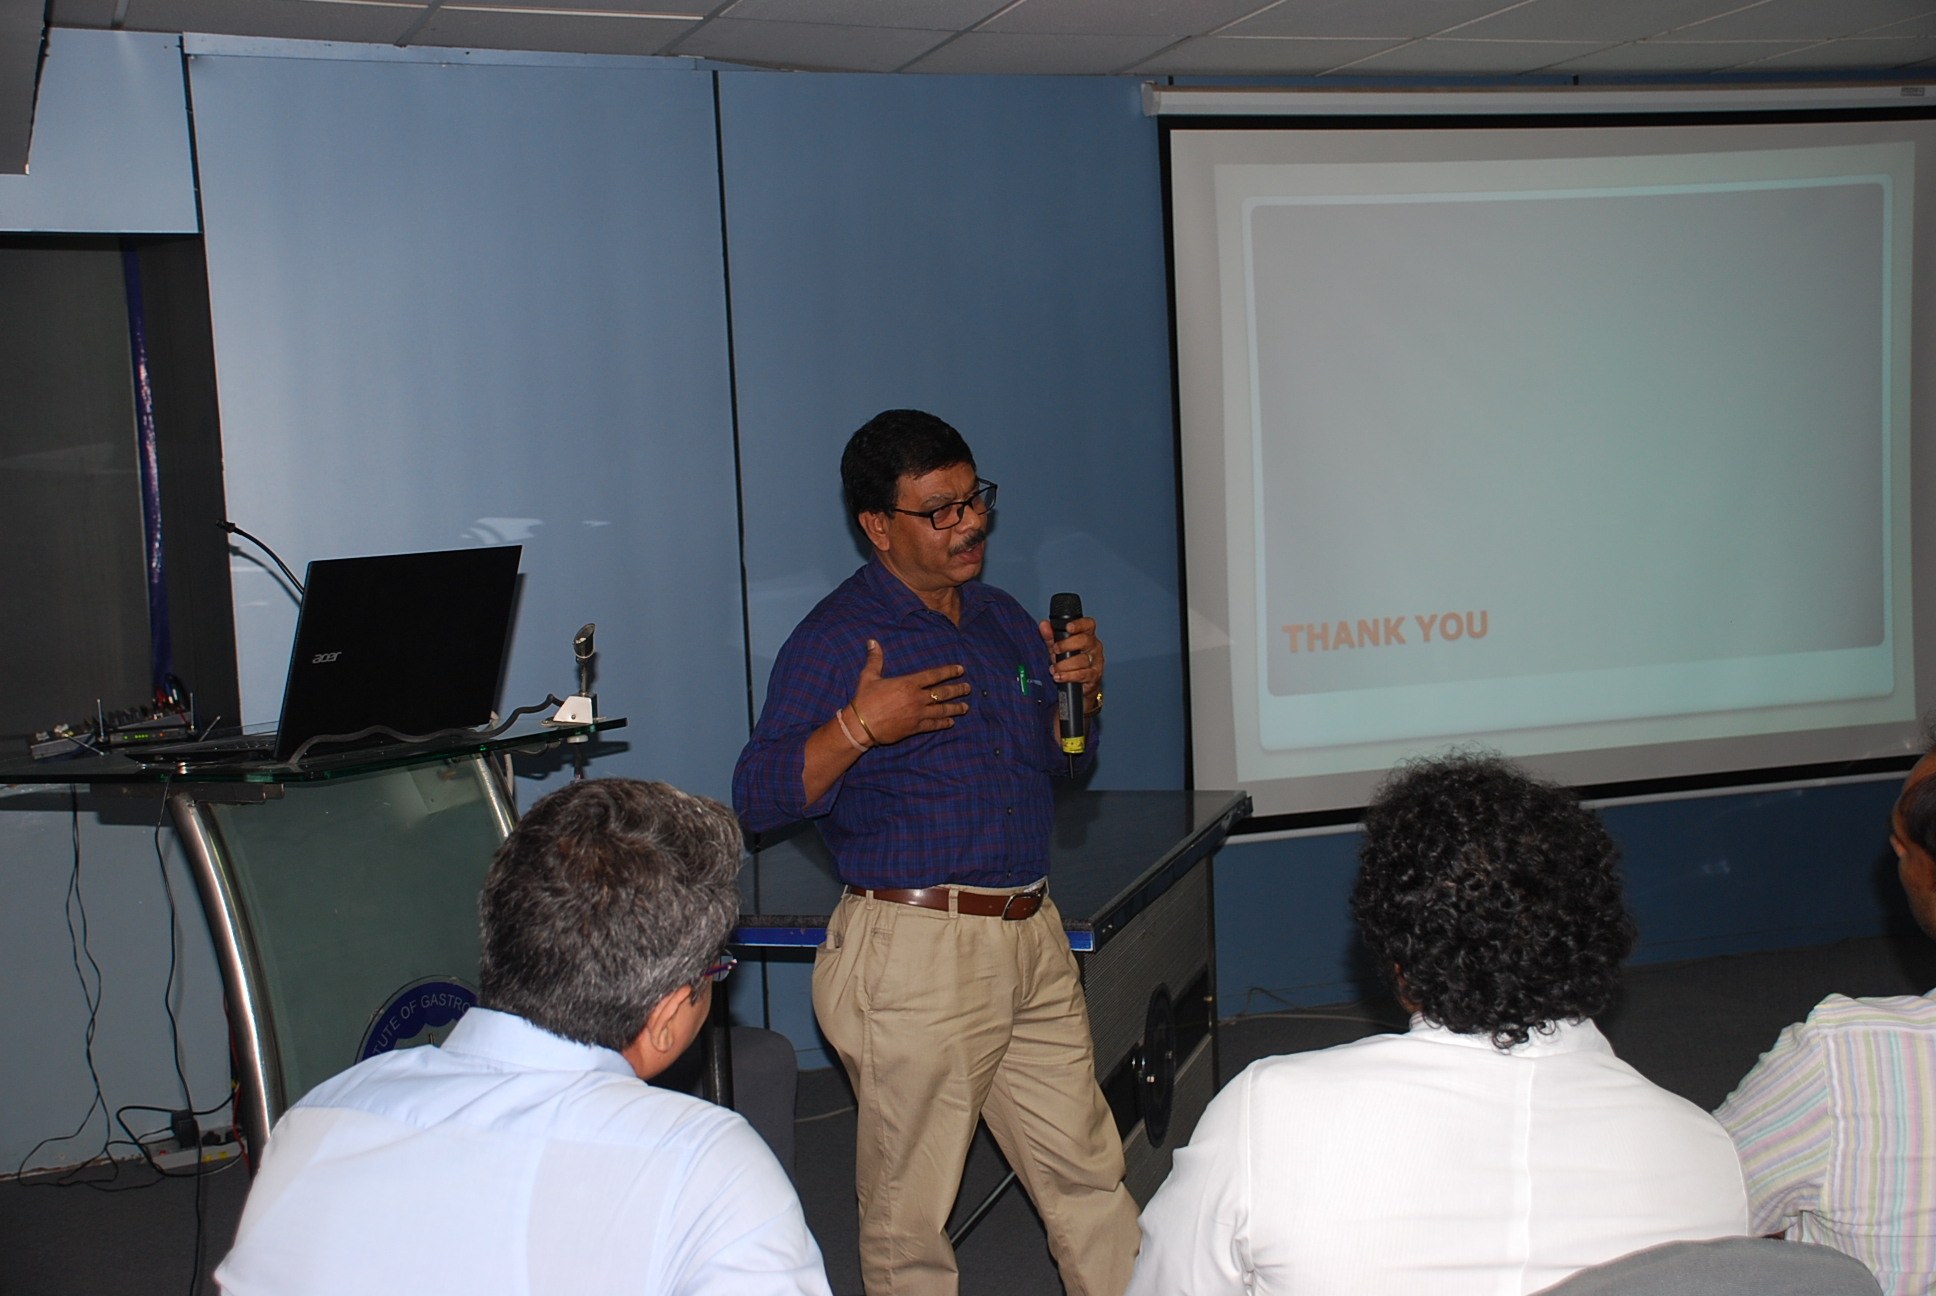 Doctors giving presentation to patients (4)